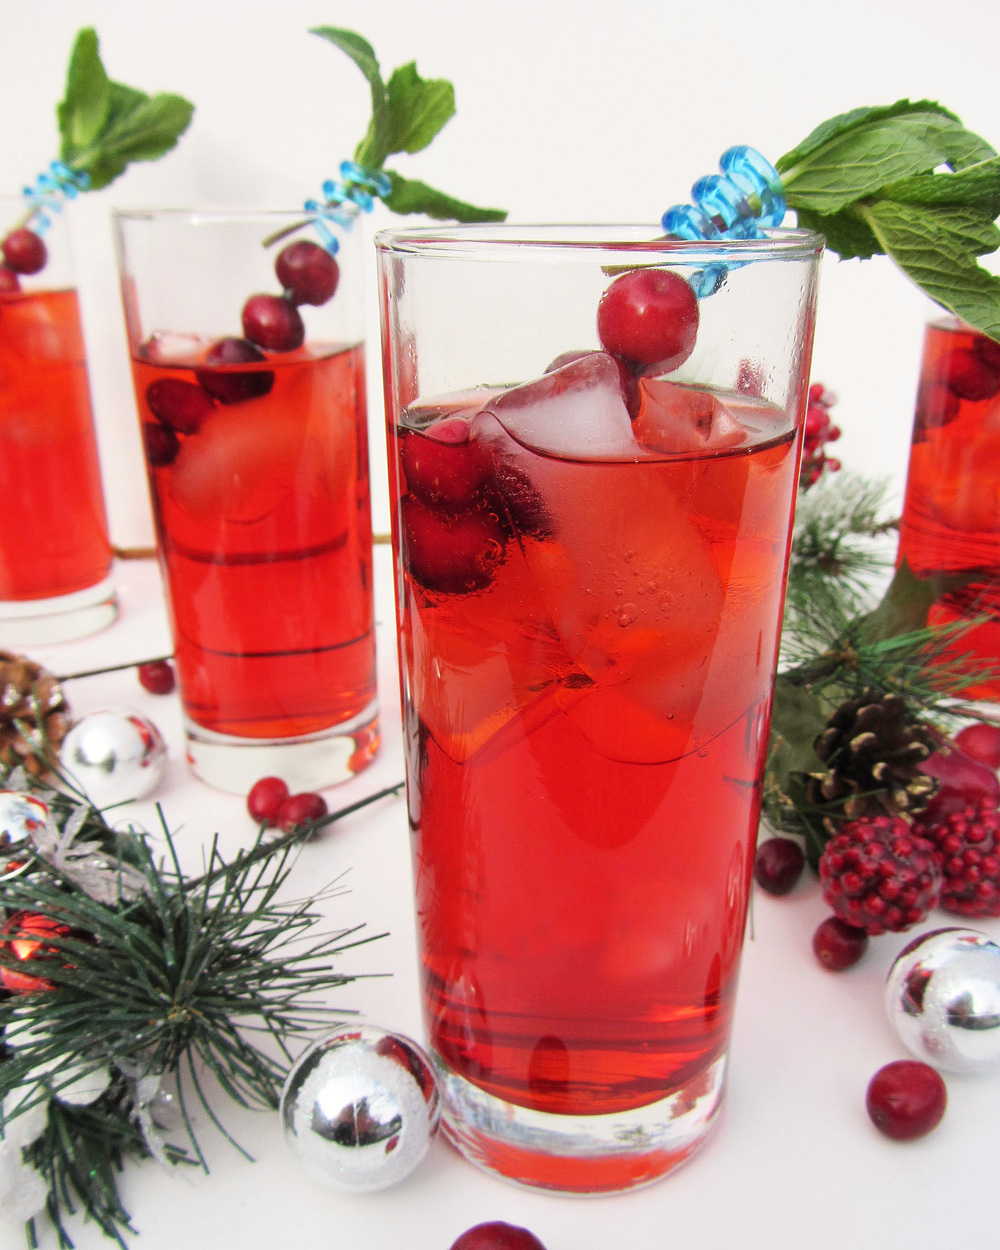 Cranberry Fizz Cocktail Recipe: Cranberry Gin Fizz (and Merry Christmas!)